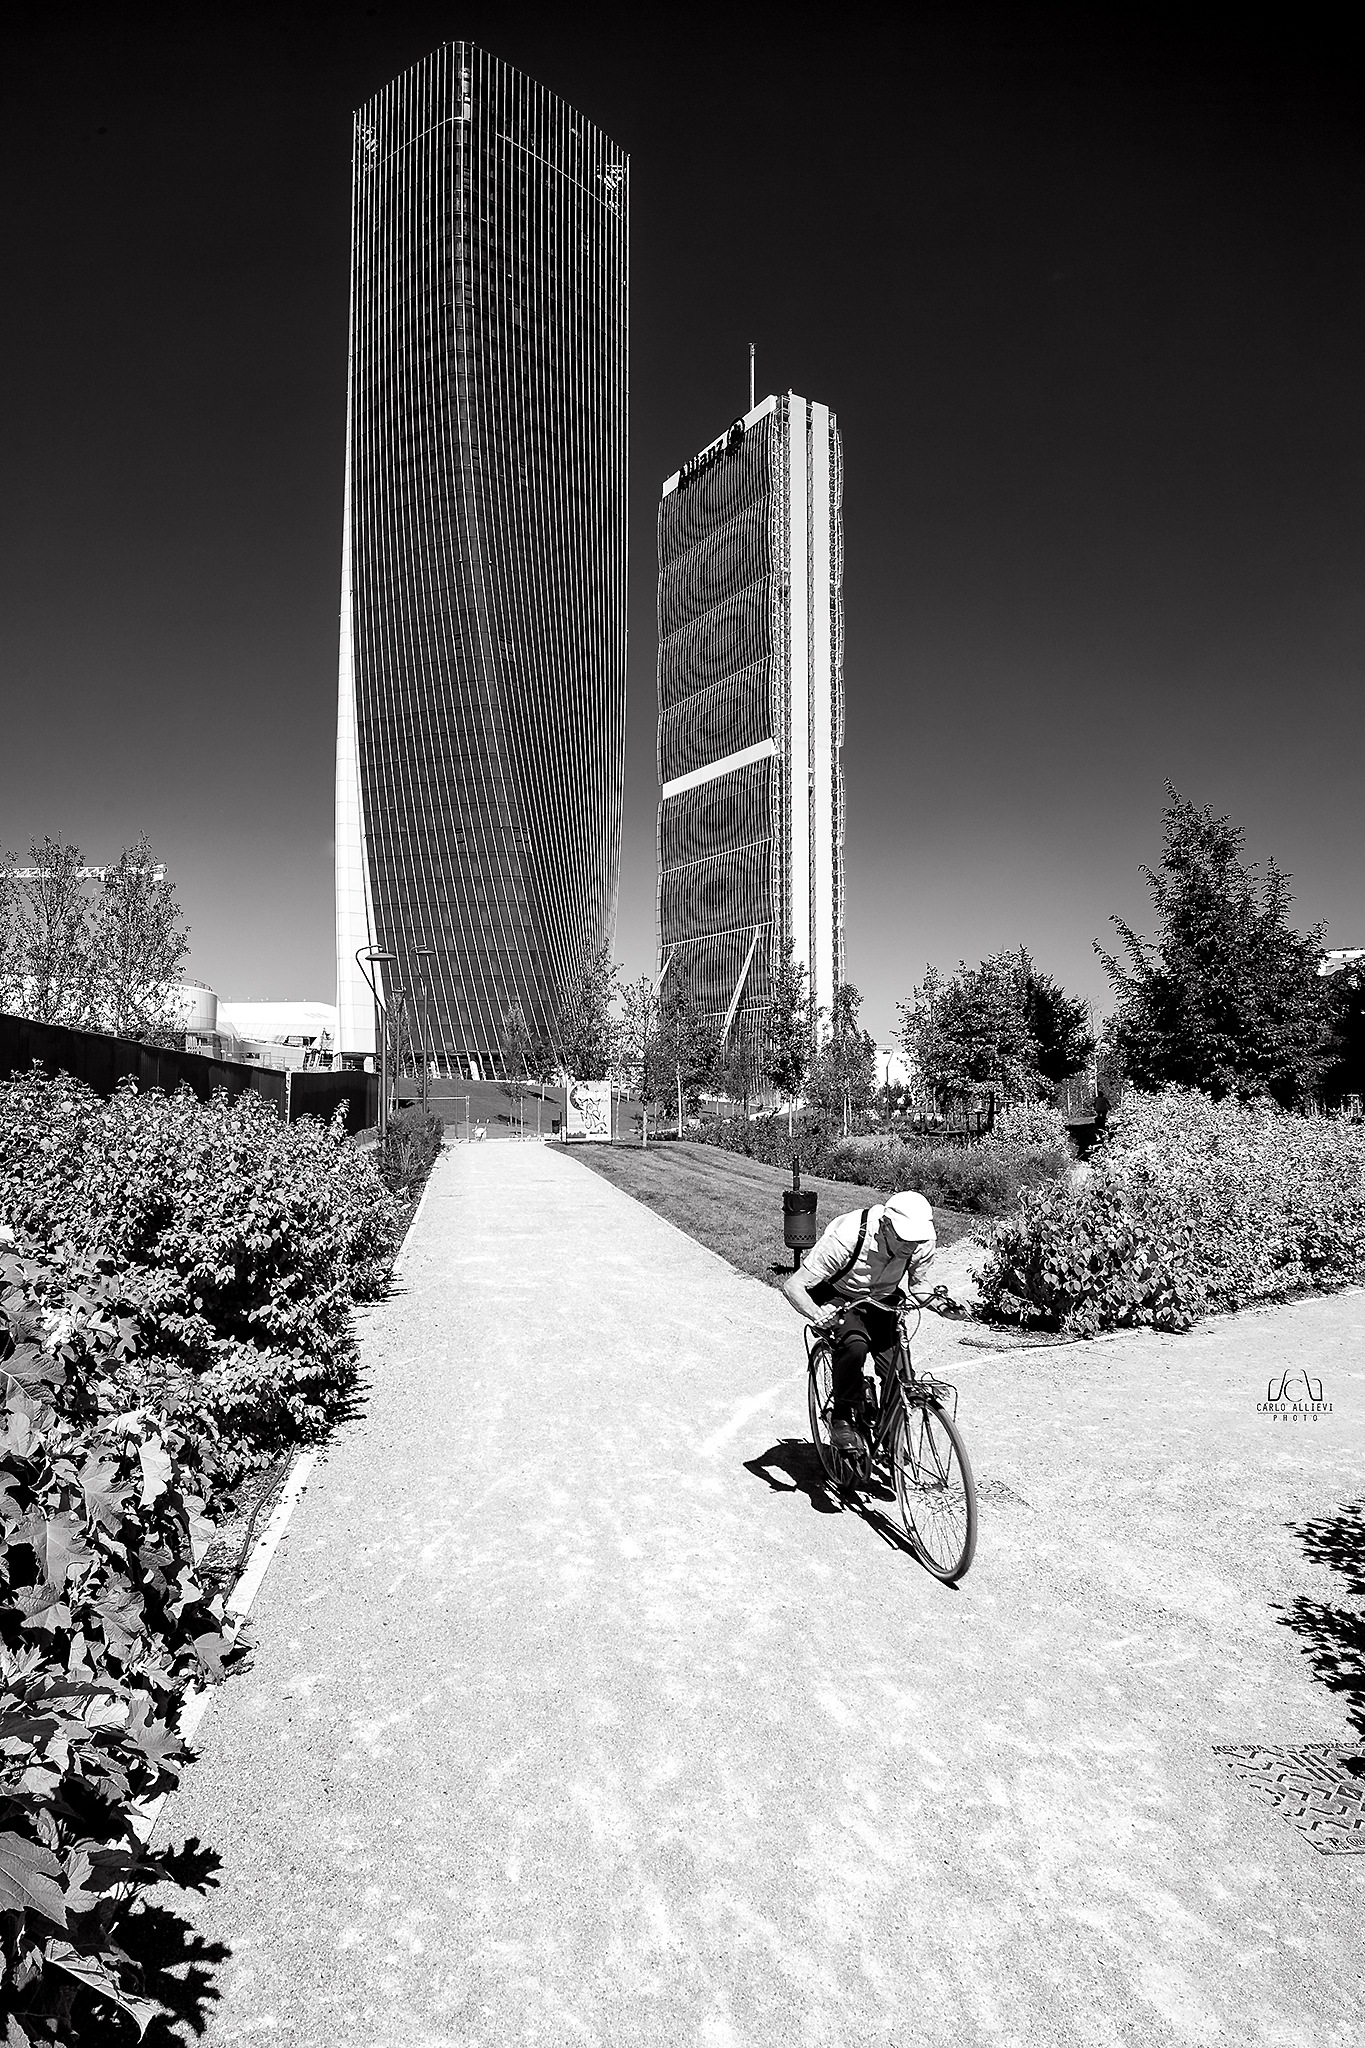 Escape from the City by Carlo Allievi